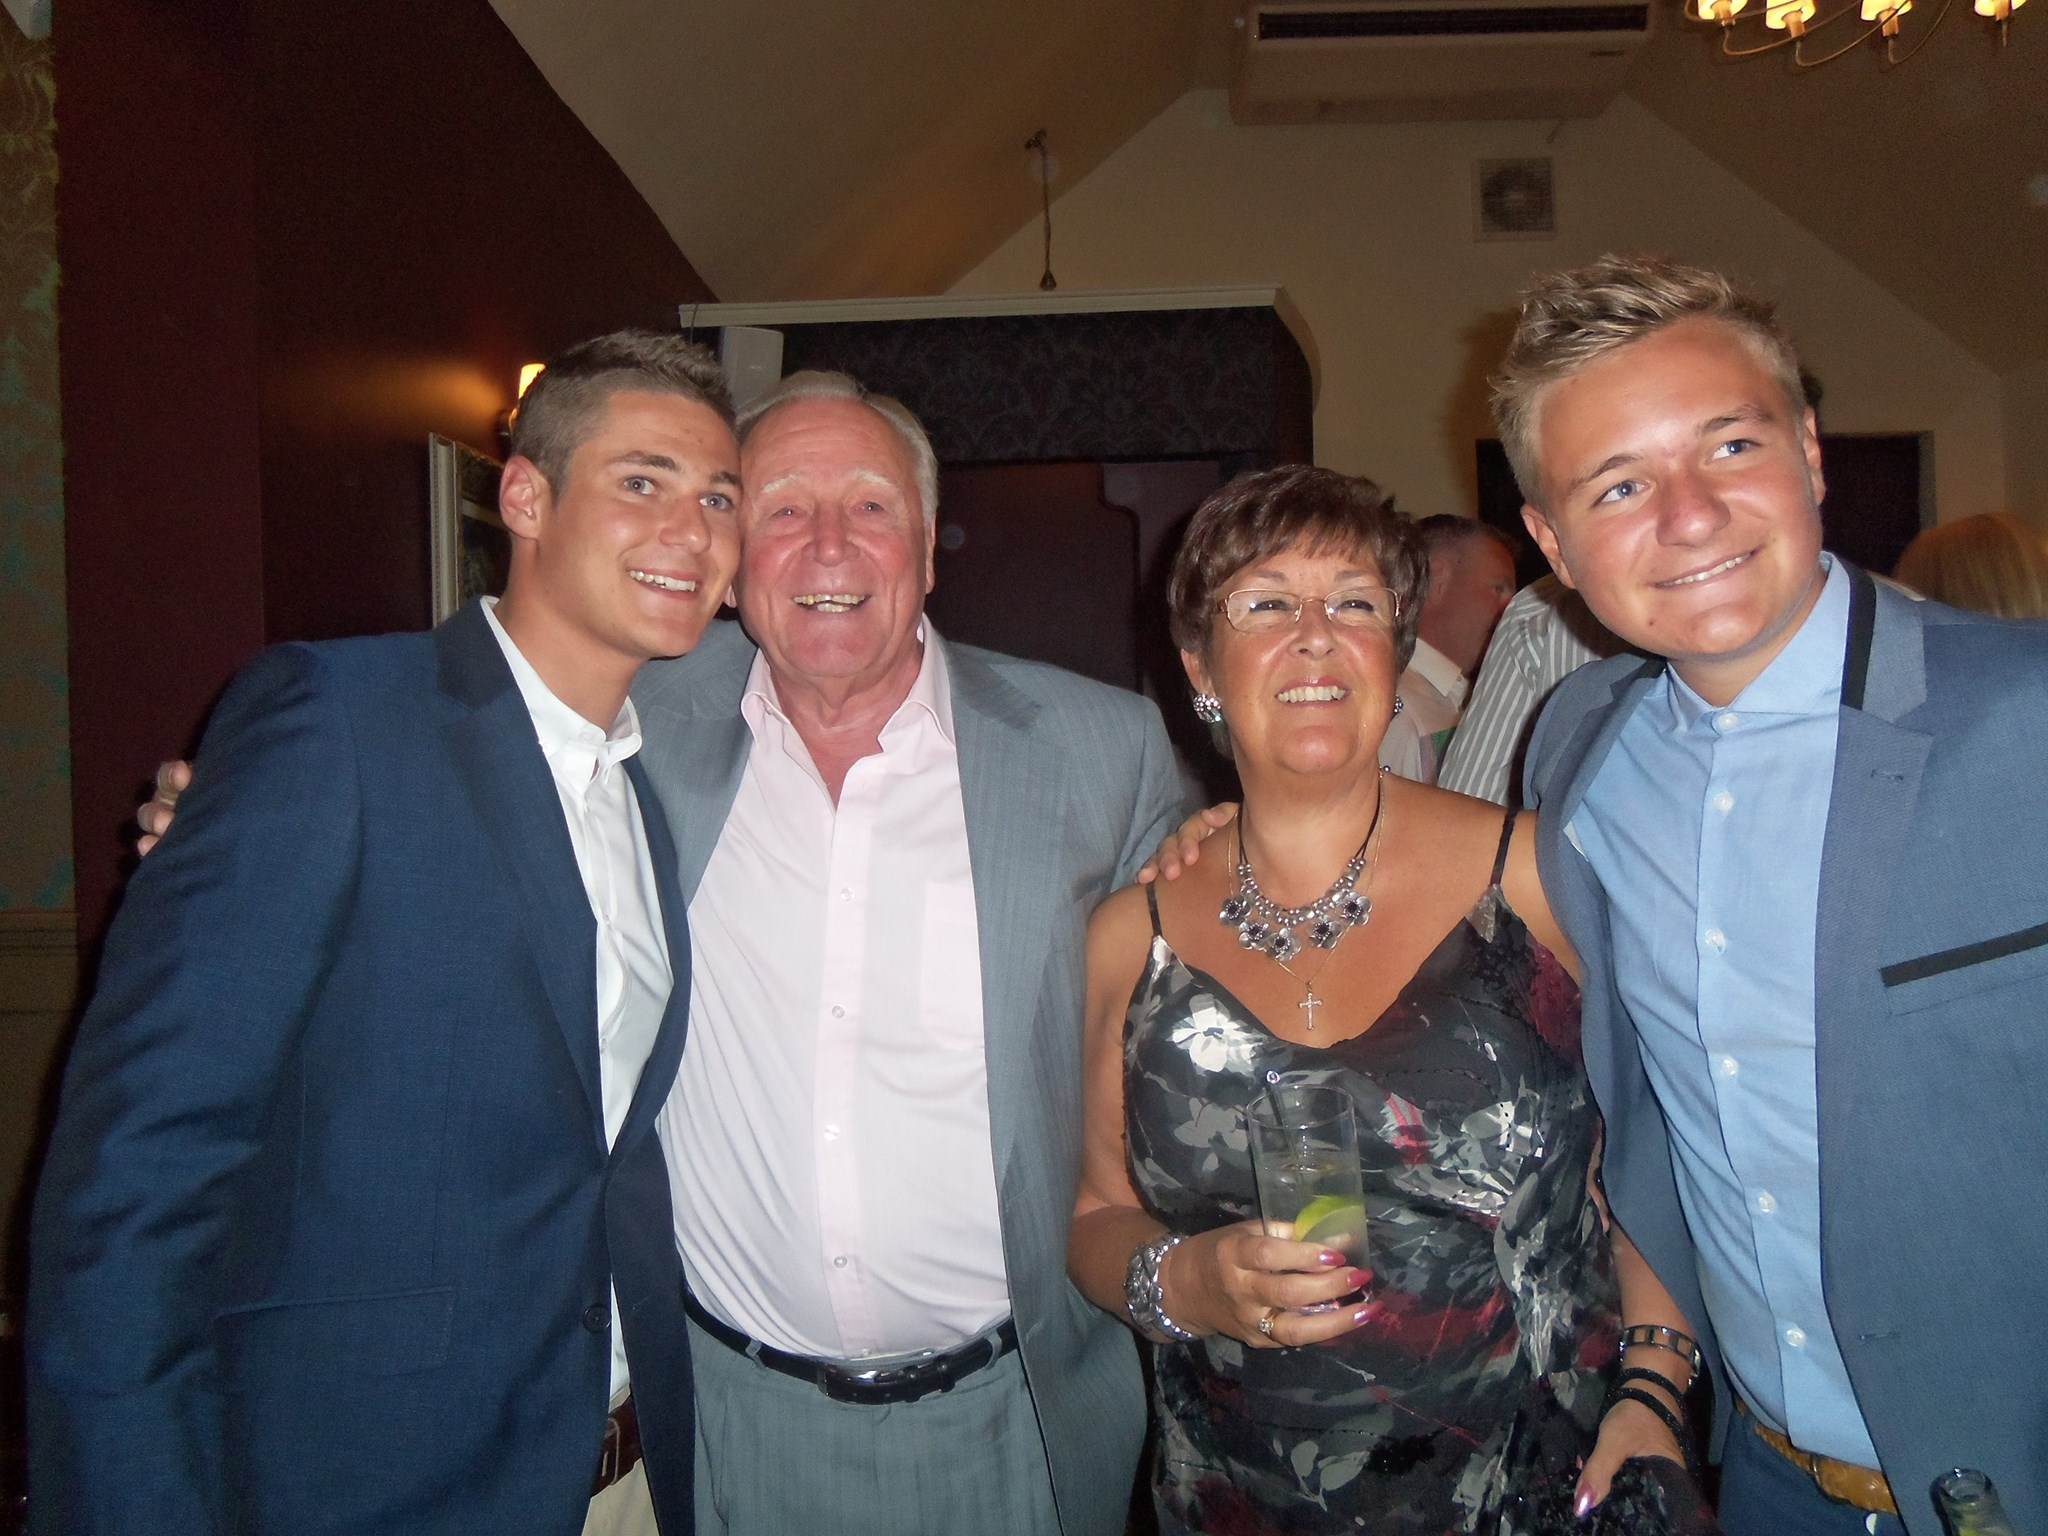 Jordan and Ollie with mum and dadxx